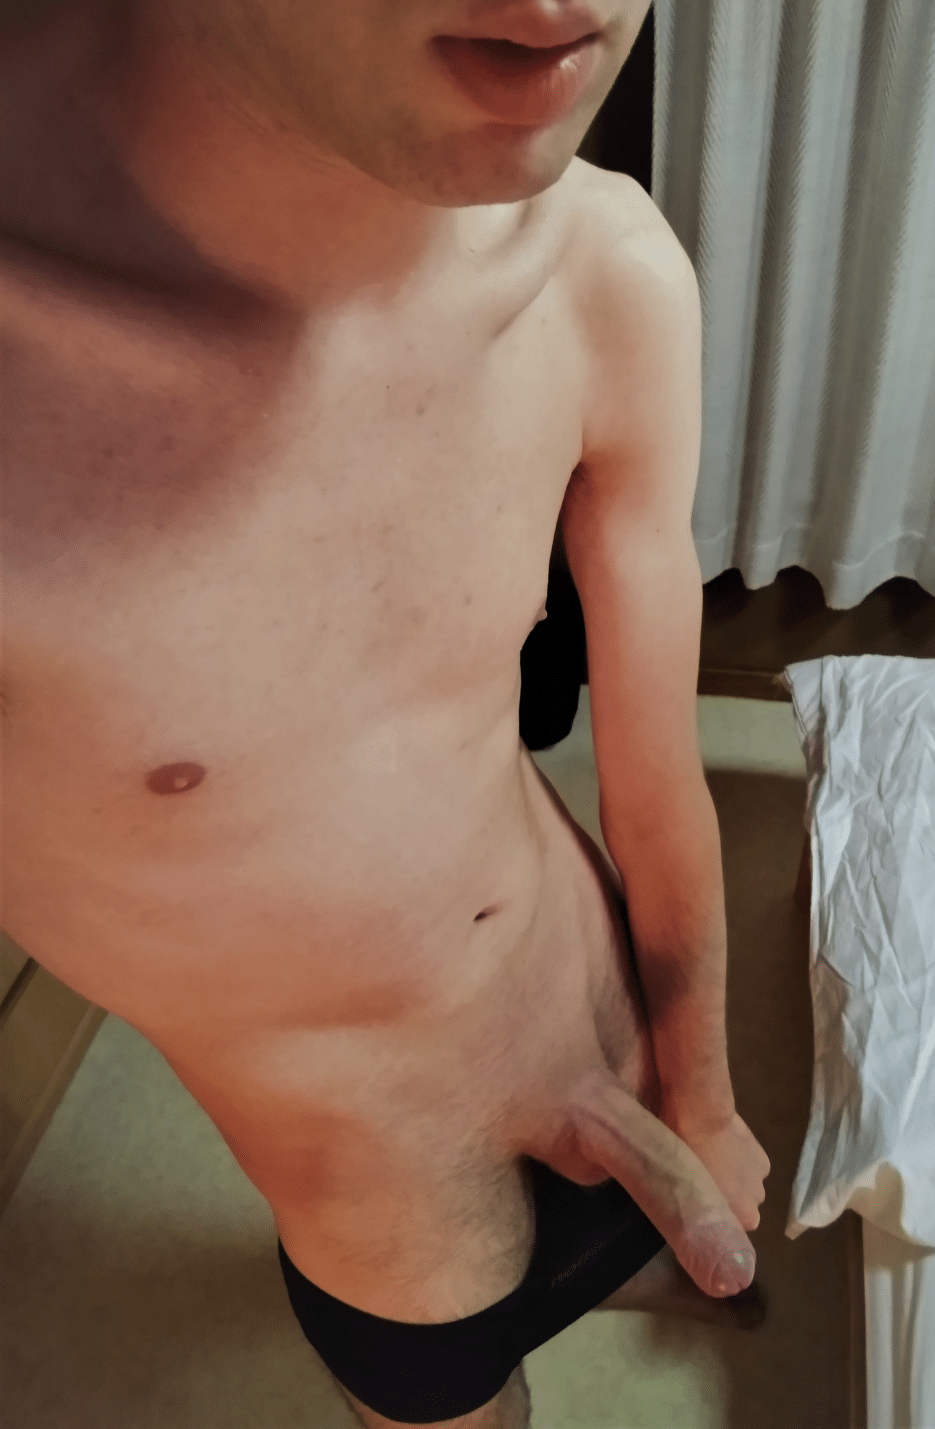 Very nice smooth shaved cock